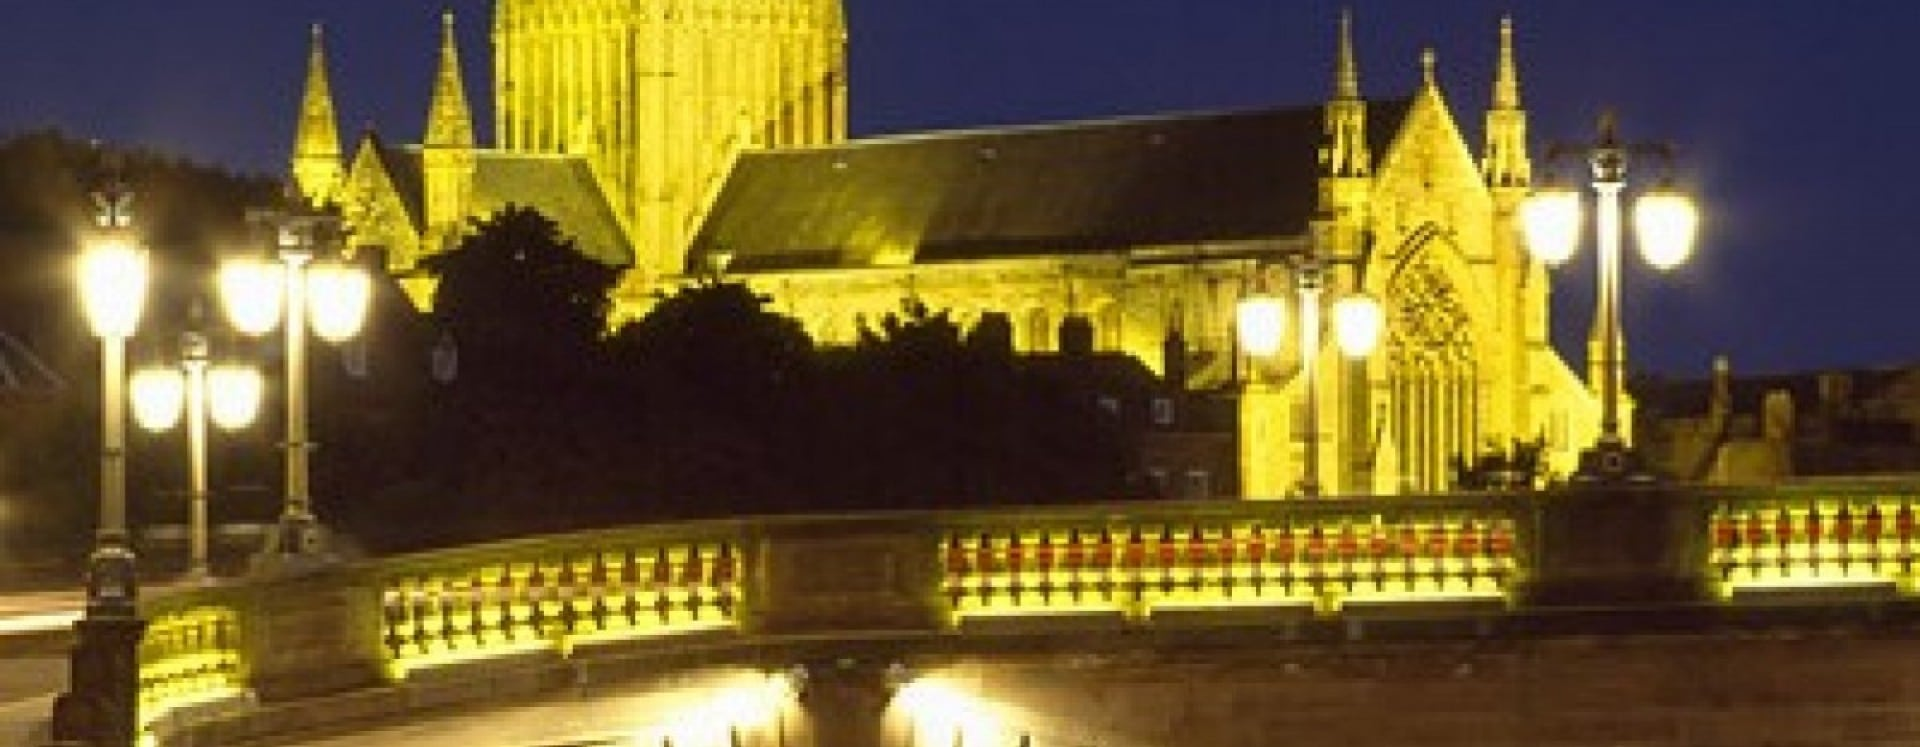 cropped-cropped-4_worcester_cathedral-e1420730028888.jpg